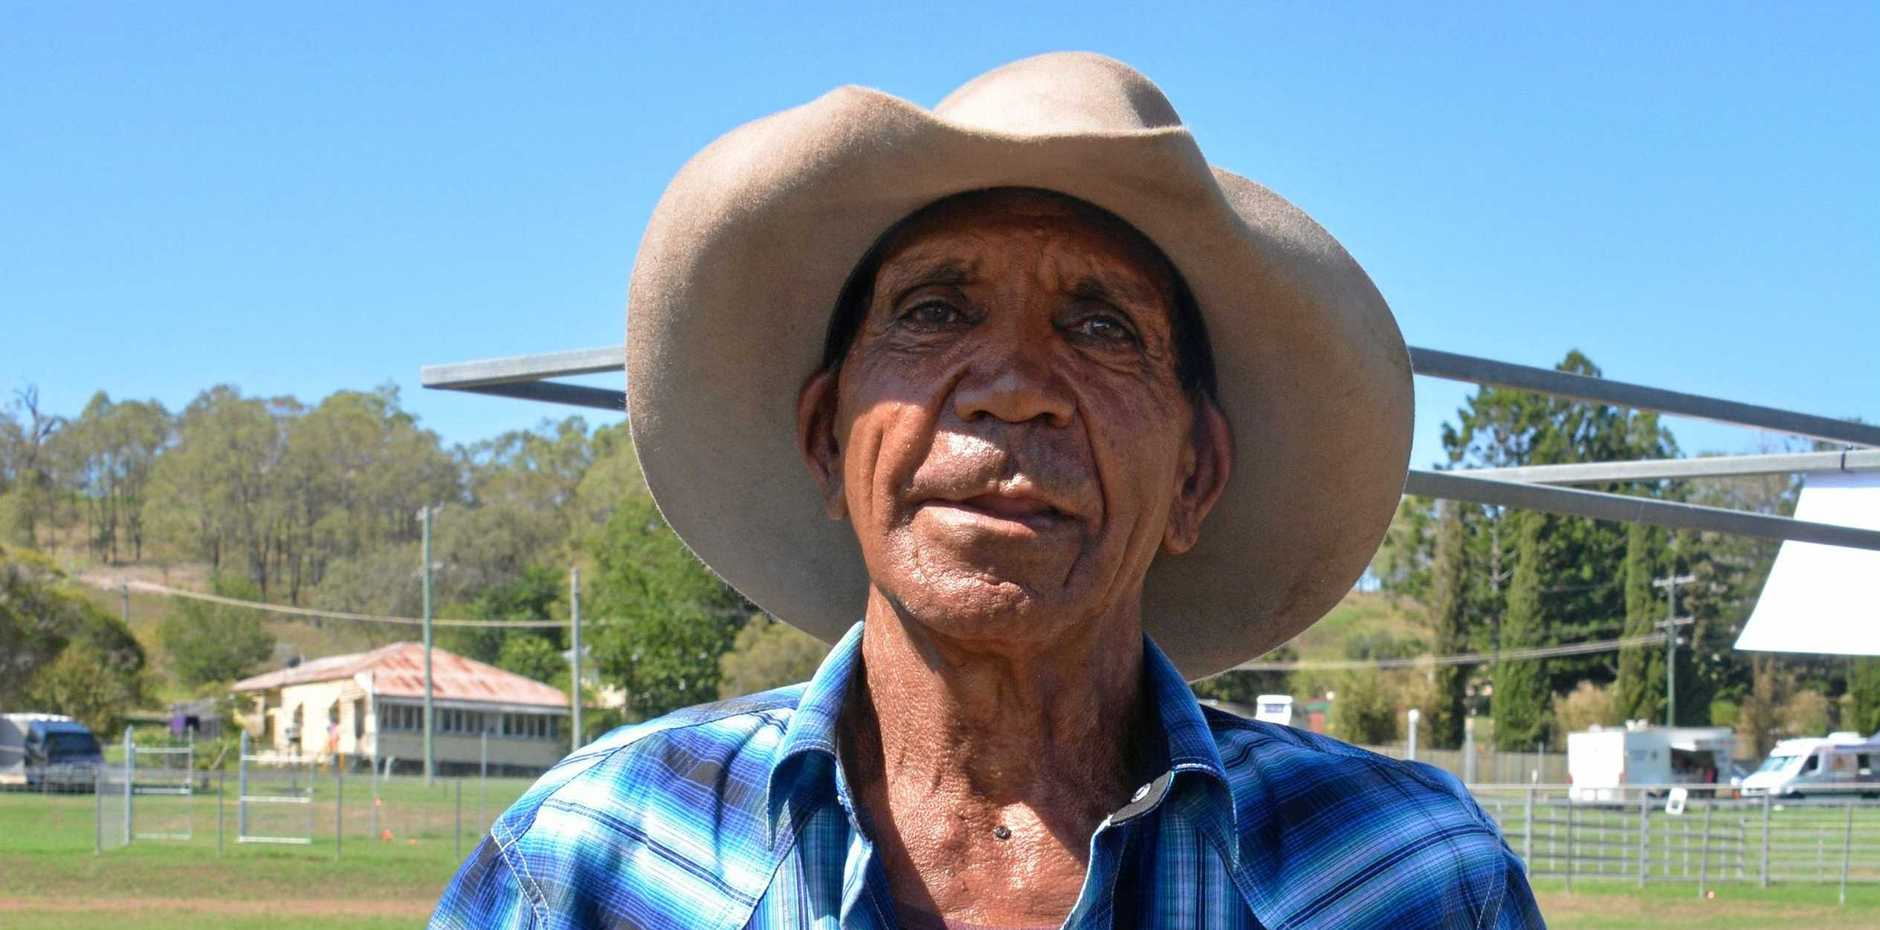 SHOCK DEATH: Tributes are flowing for much-loved Gympie region icon, Stanley Mickelo who died suddenly today. This photo was taken earlier this year at the 79th Goomeri Show in March 23, 2019.